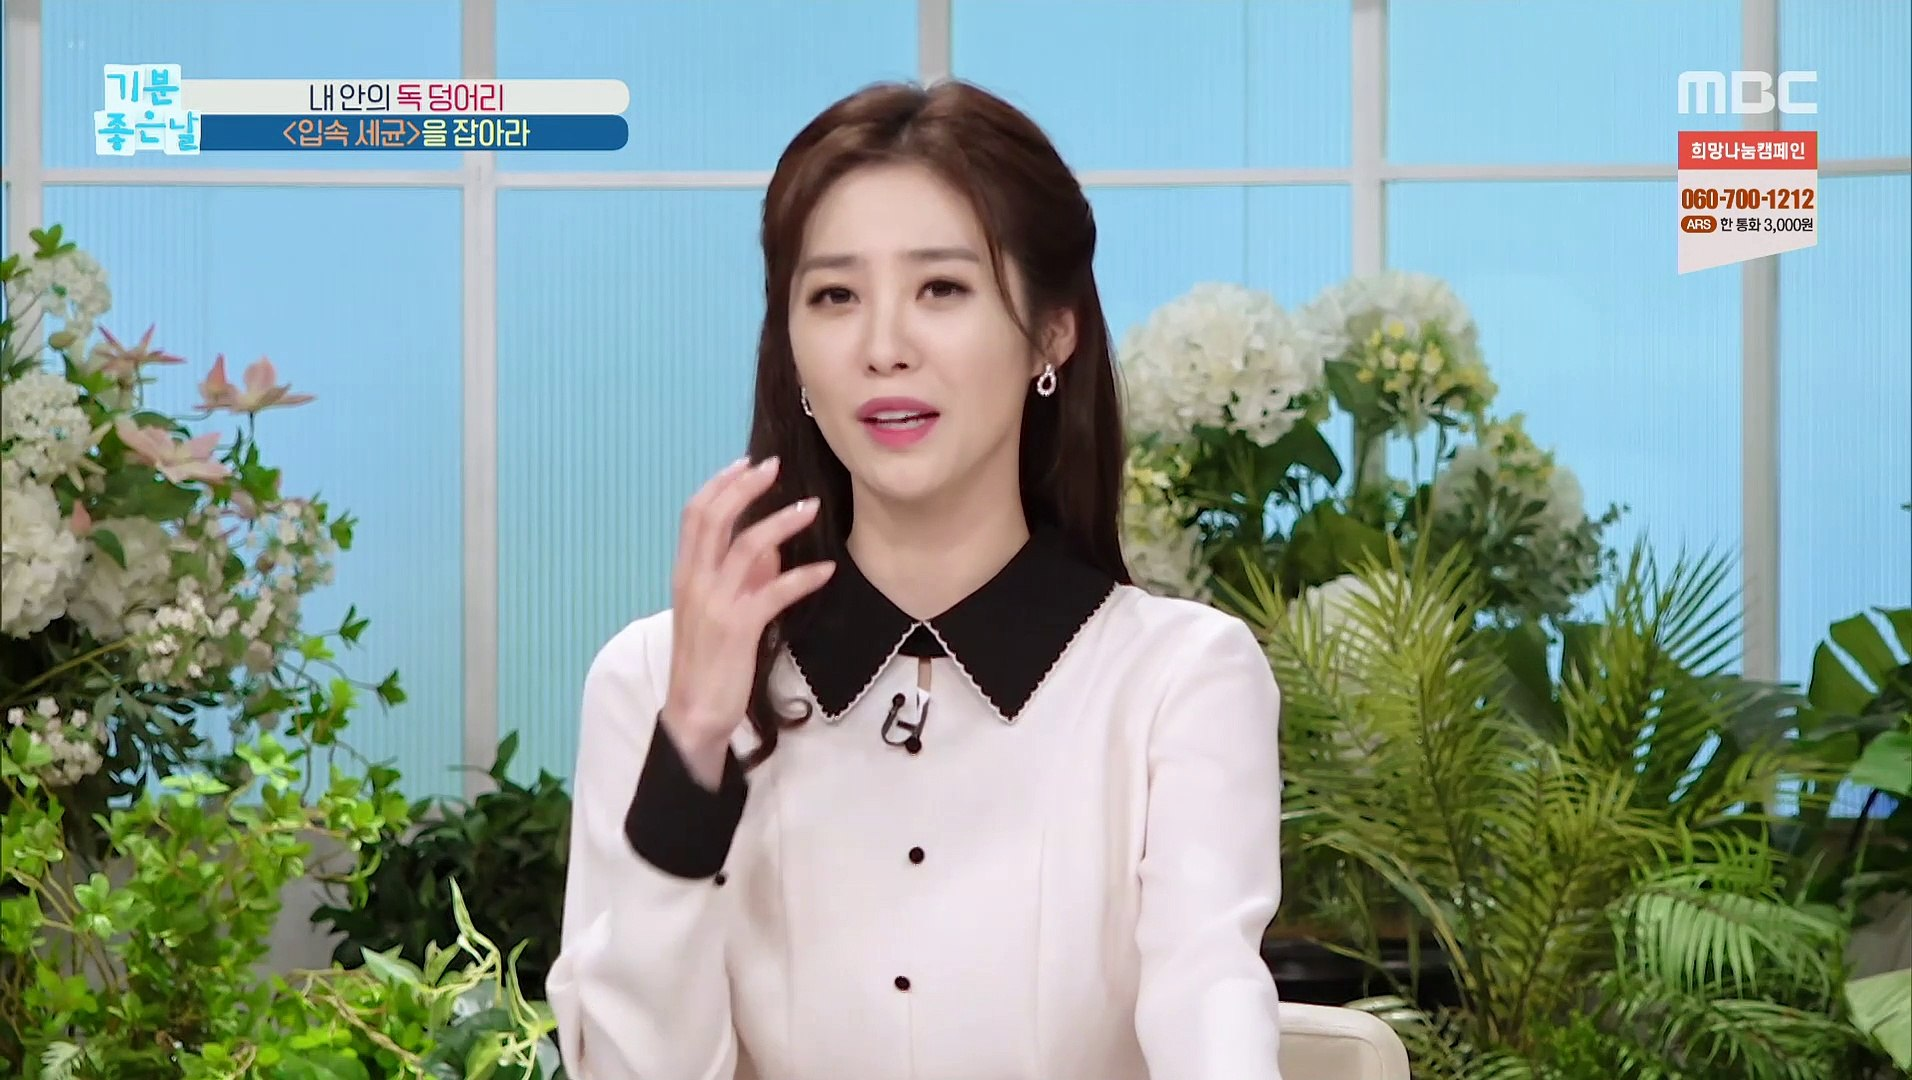 [HEALTHY] Oral bacteria are called a 'systemic disease'?, 기분 좋은 날 20191226